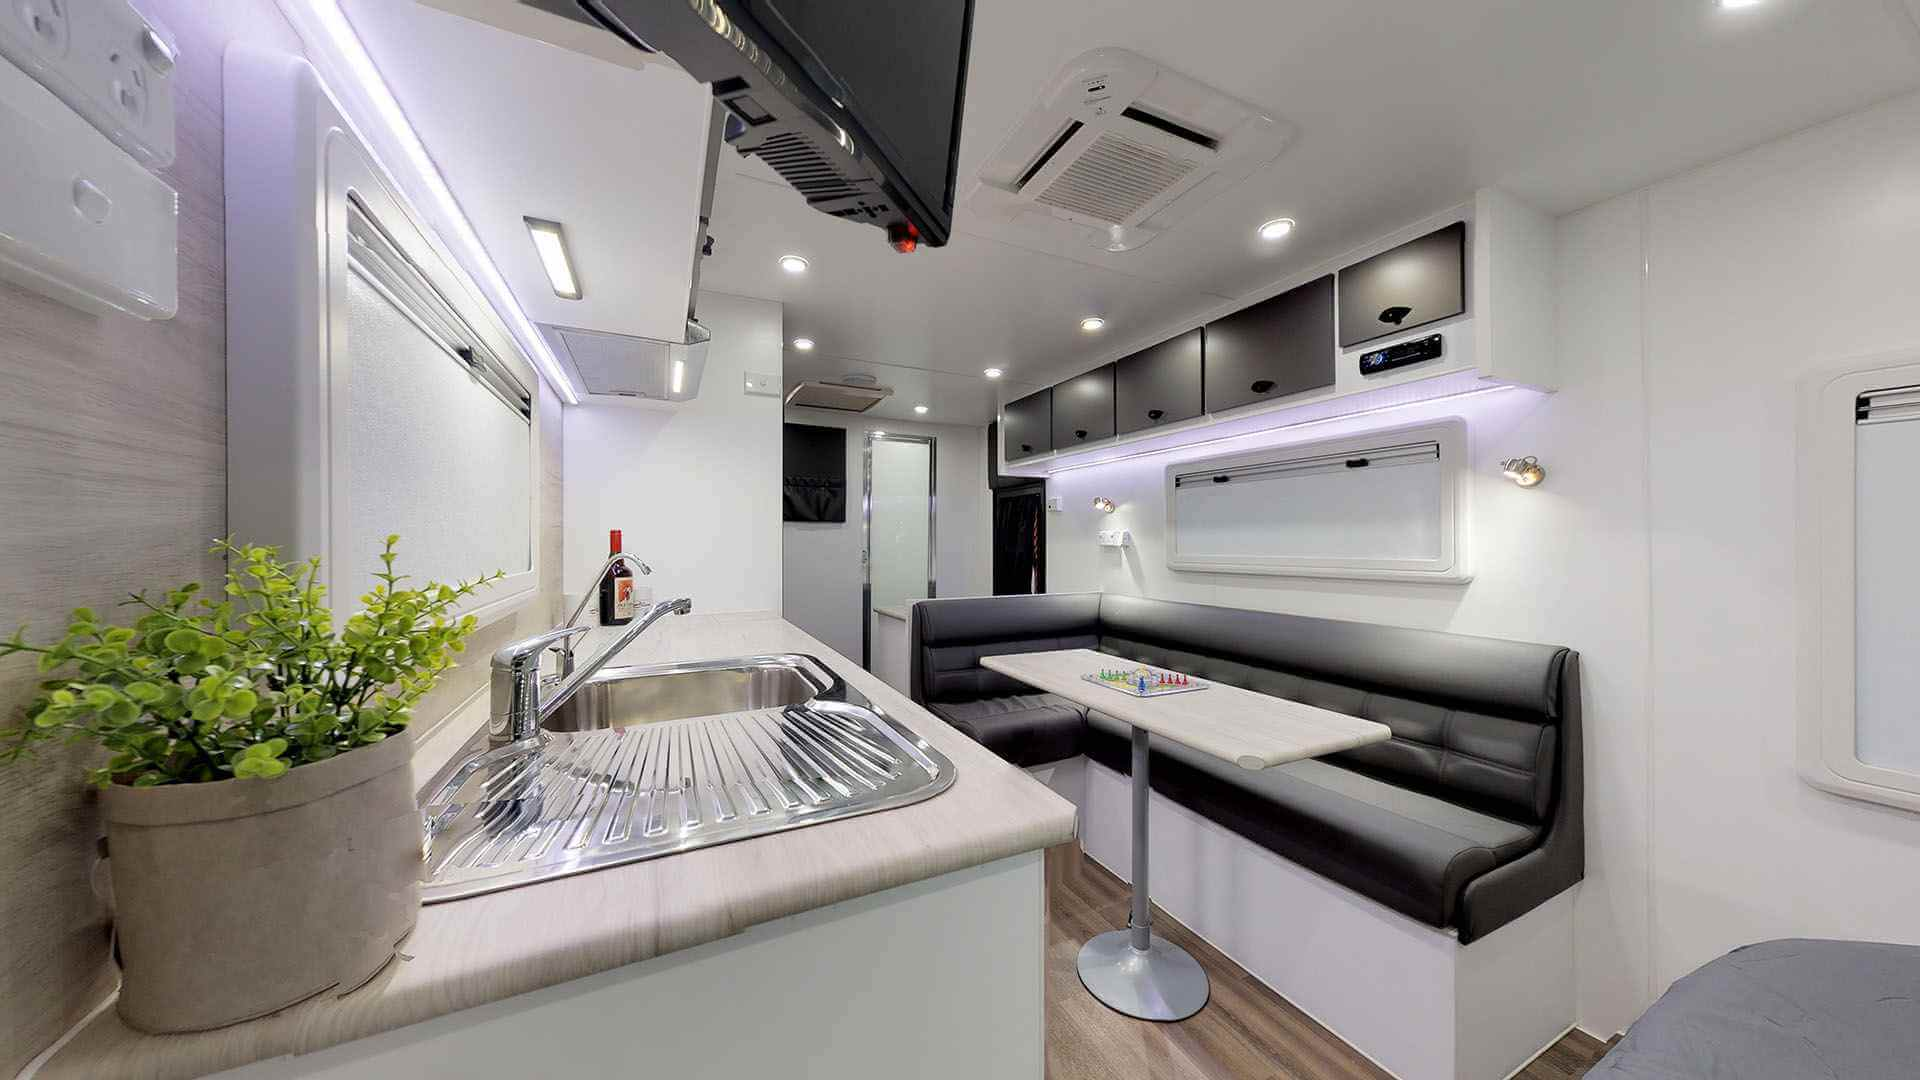 21ft Ultimate Family Design Rear Door Tour Image 12